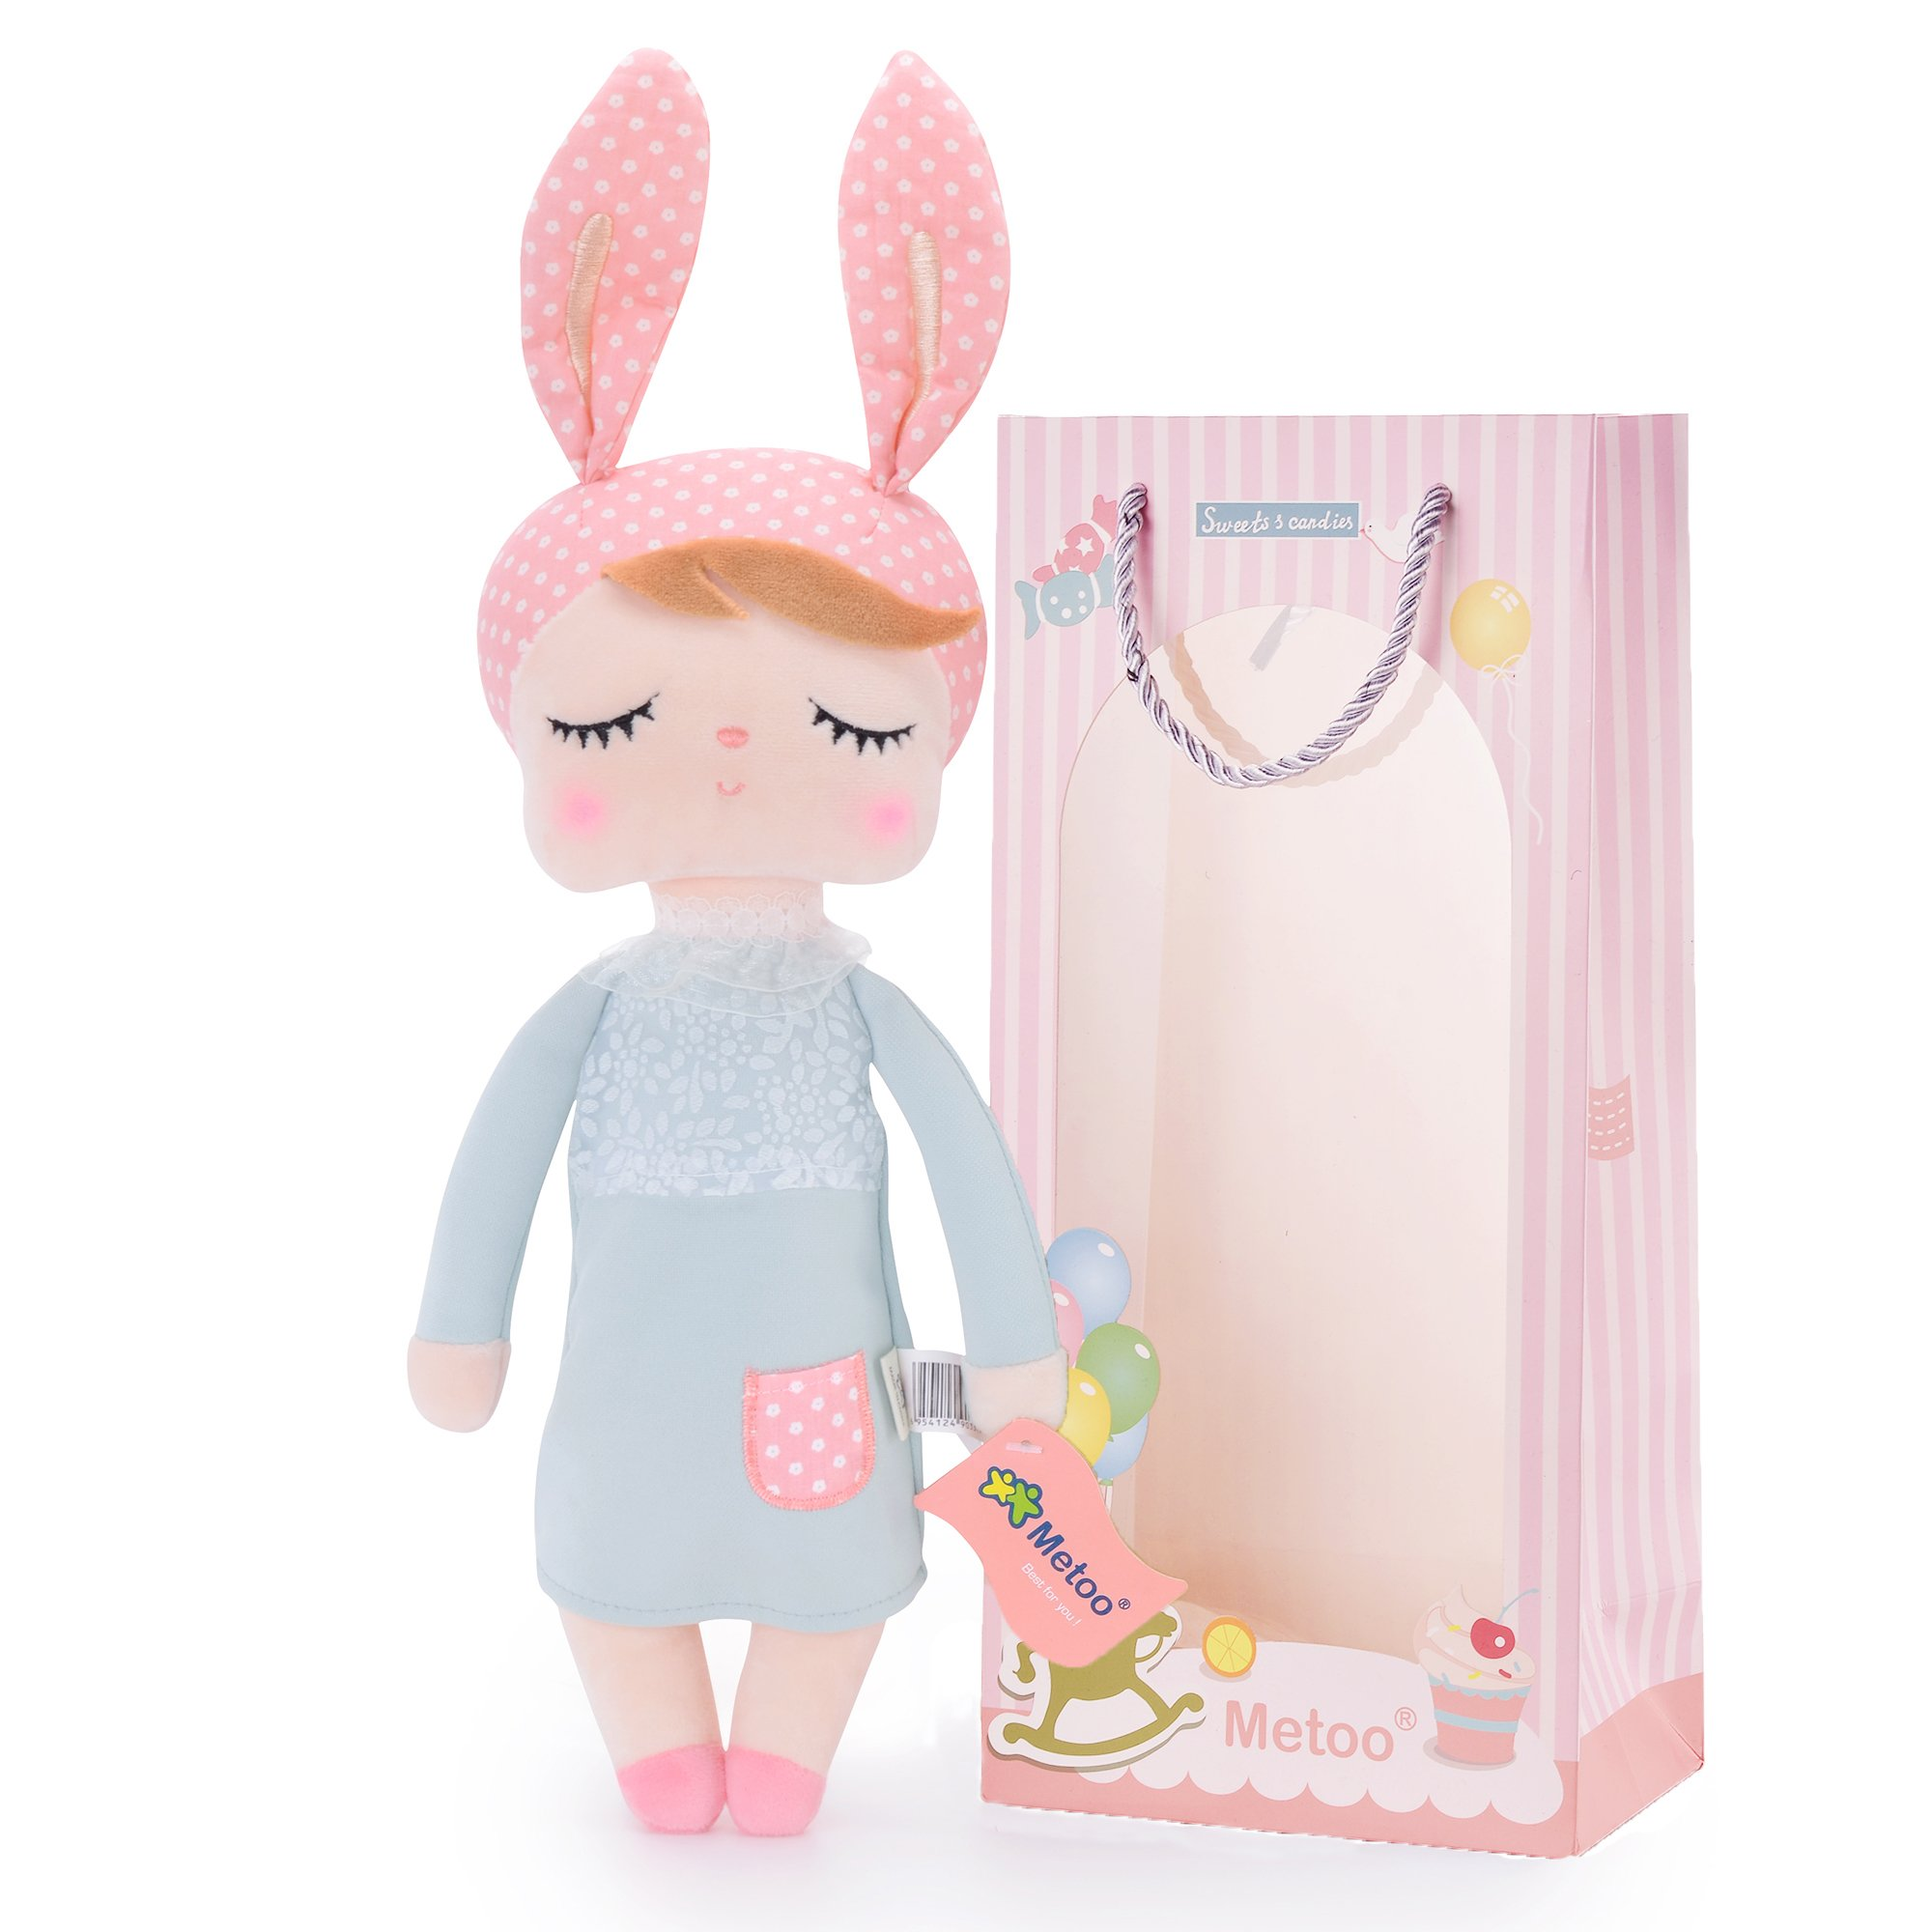 Easter Gifts Baby Dolls Girl Gifts - Stuffed Bunny Plush Rabbit Toys12 inches …